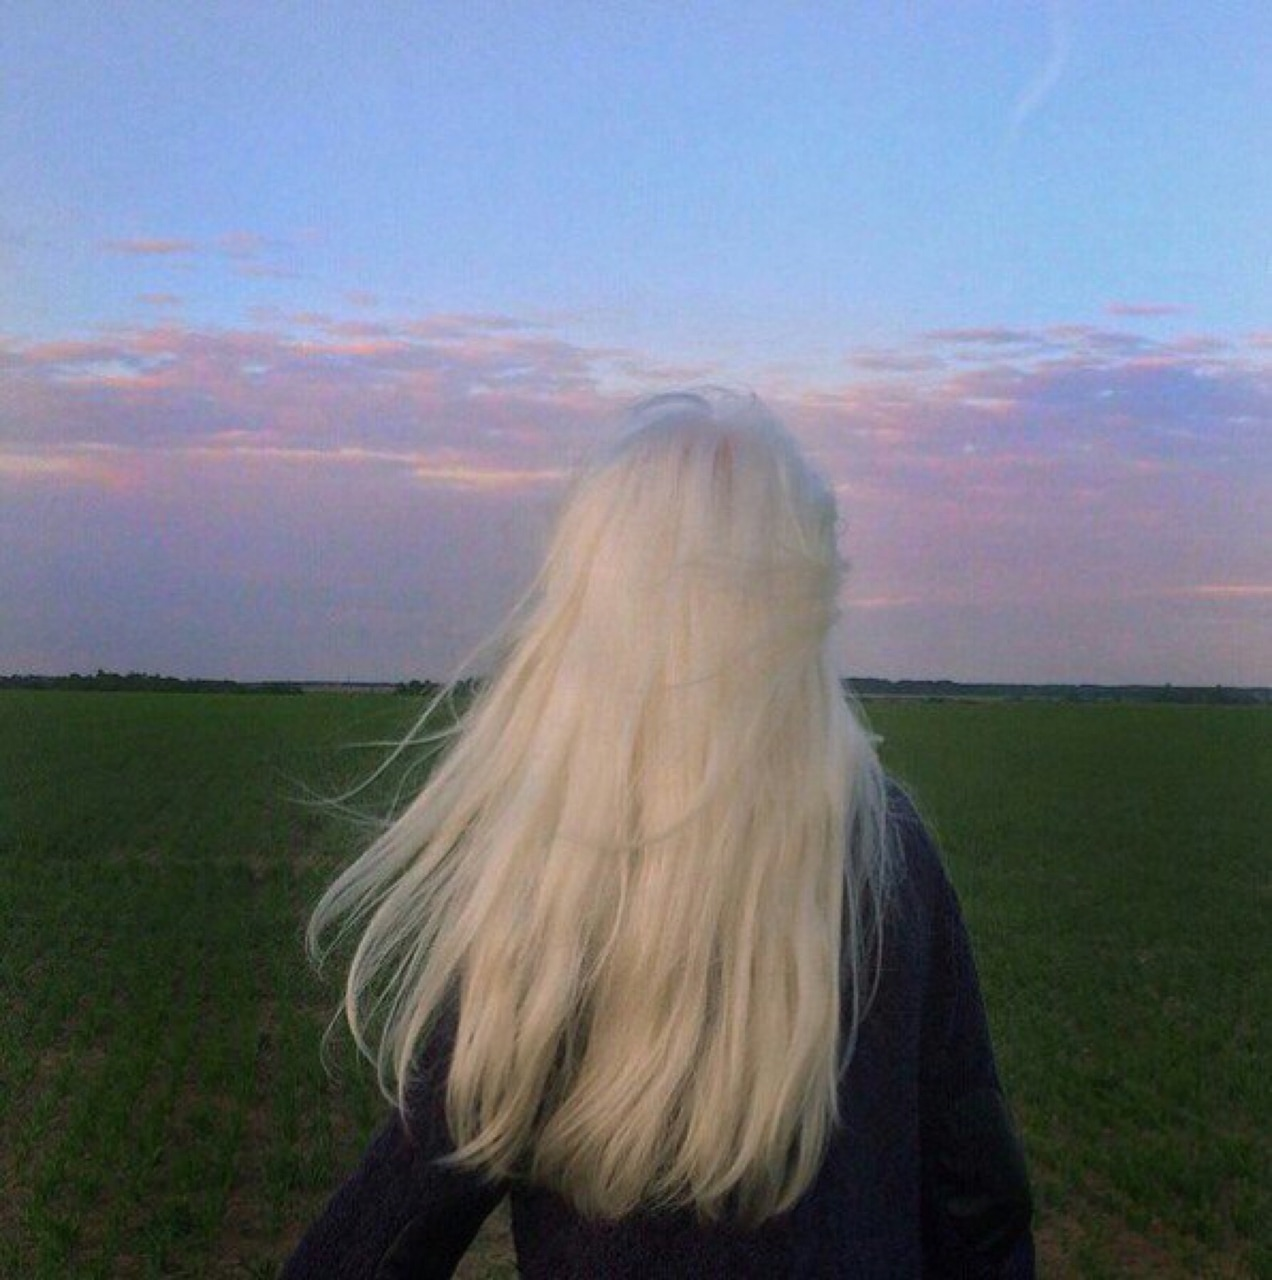 blonde and faceless image